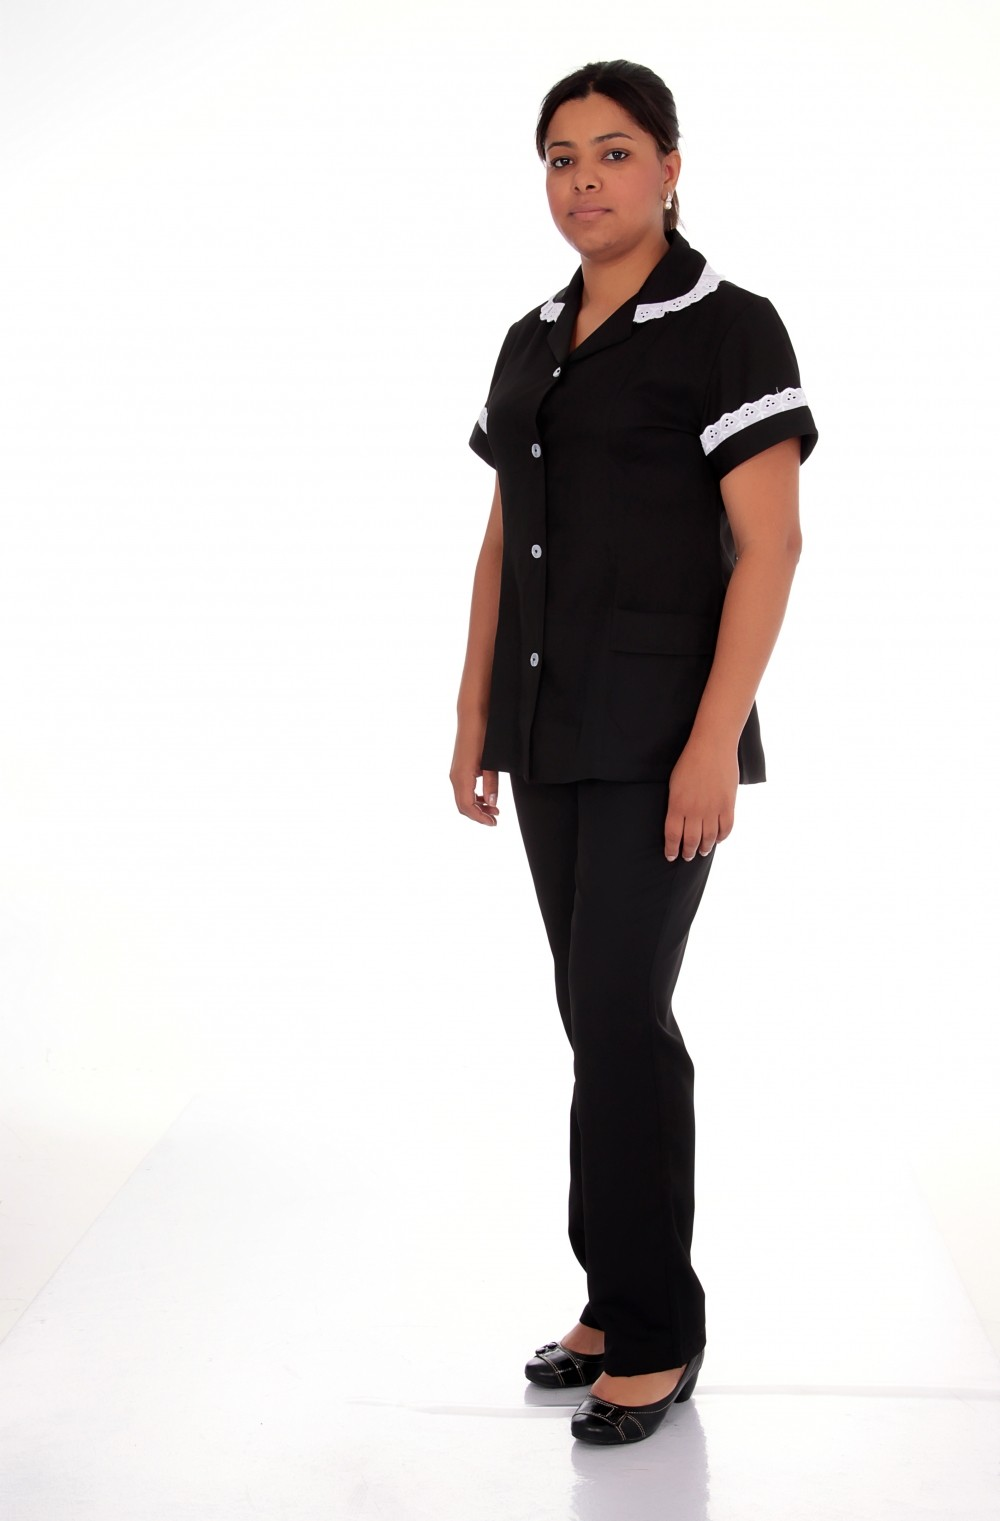 Uniforme Industrial Grifer Uniformes Cotanet